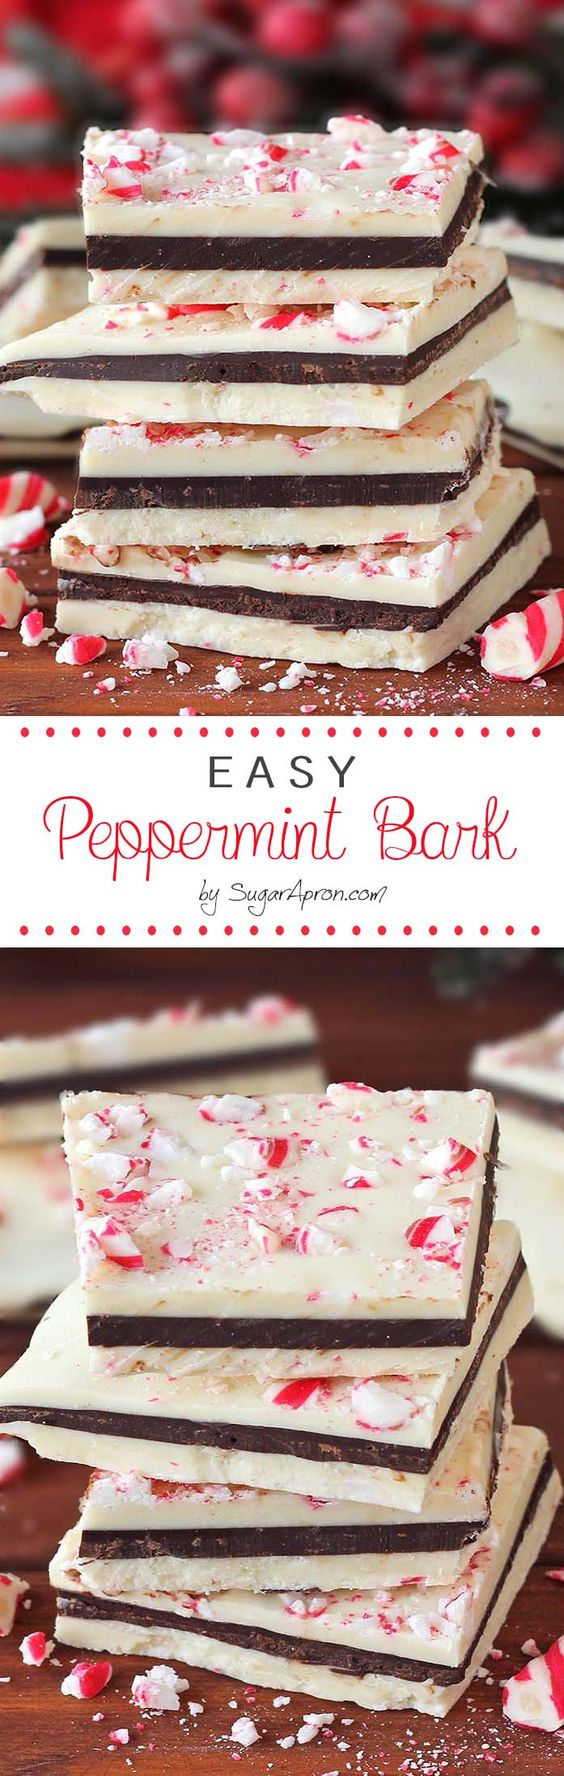 Easy Peppermint Bark Recipe via Sugar Apron - If you love that seasonal peppermint bark from the big warehouse store - you GOTTA give these a try! #chrstmascookies #christmascandy #christmastreats #holidaydesserts #holidayrecipes #christmascandies #holidaygiftplates